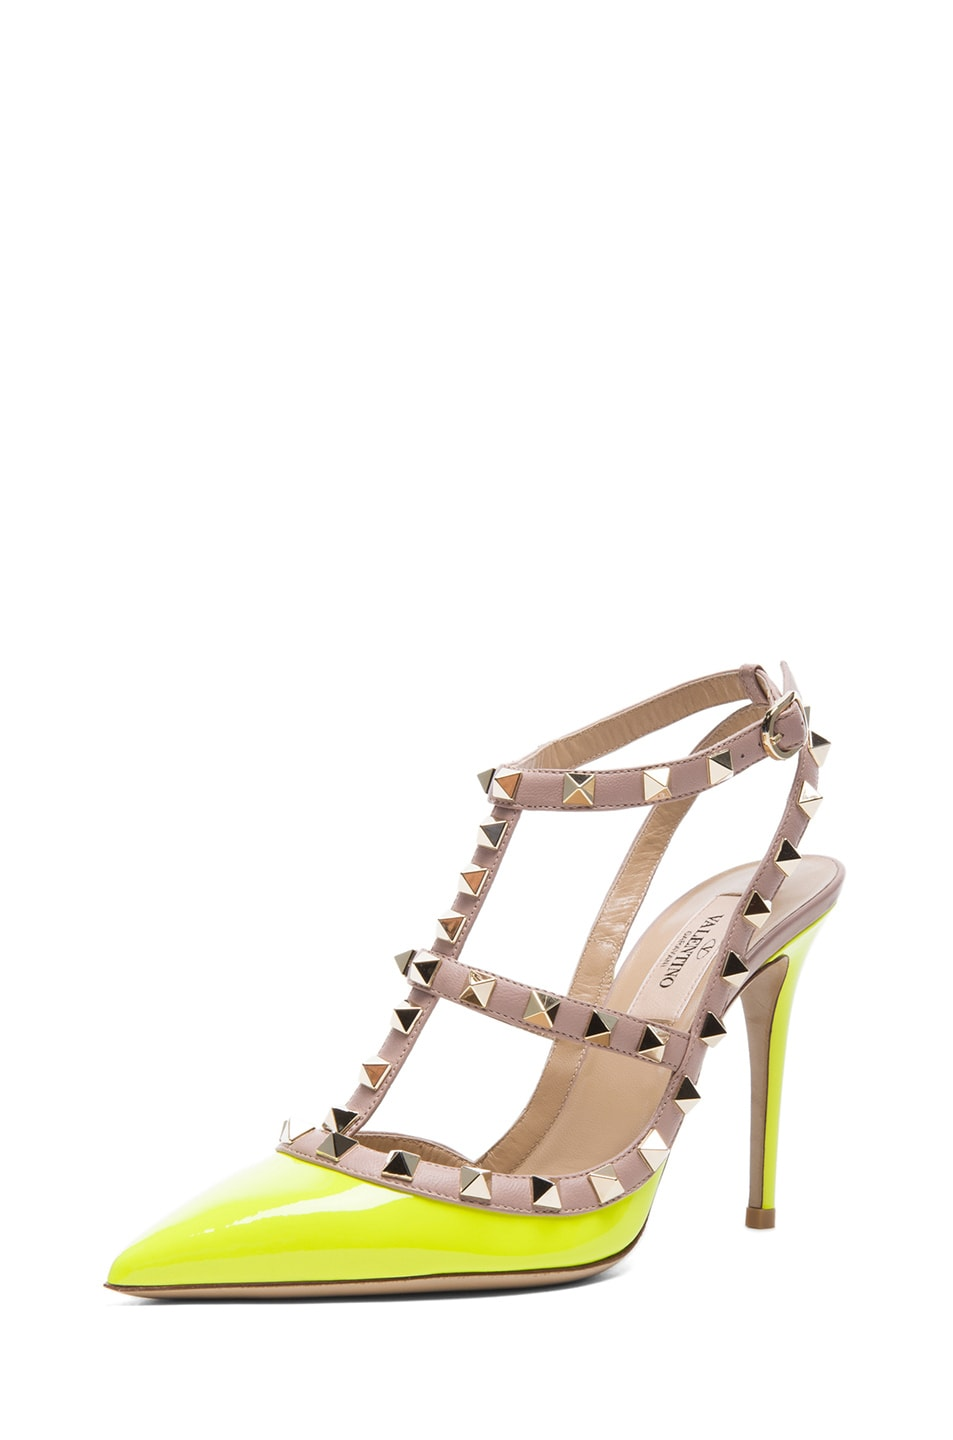 Image 2 of Valentino Rockstud Patent Slingbacks T.100 in Fluo Yellow